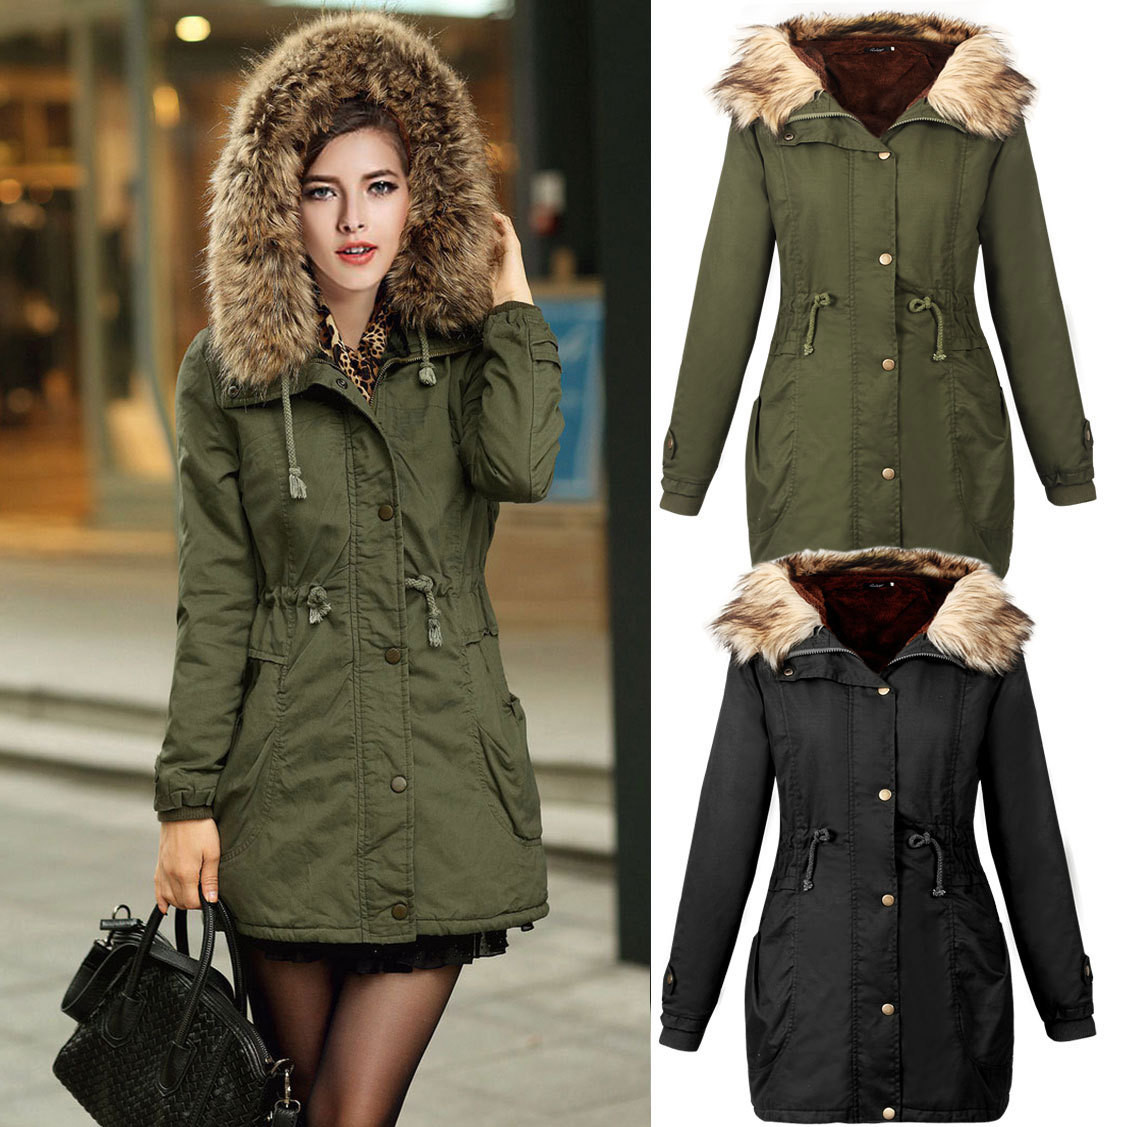 Womens Army Green Long Autumn Winter Casual Jackets Coats With Faux Fur Hooded Cargo Parkas Coat Warm Outwear Autumn Winter 0Одежда и ак�е��уары<br><br><br>Aliexpress